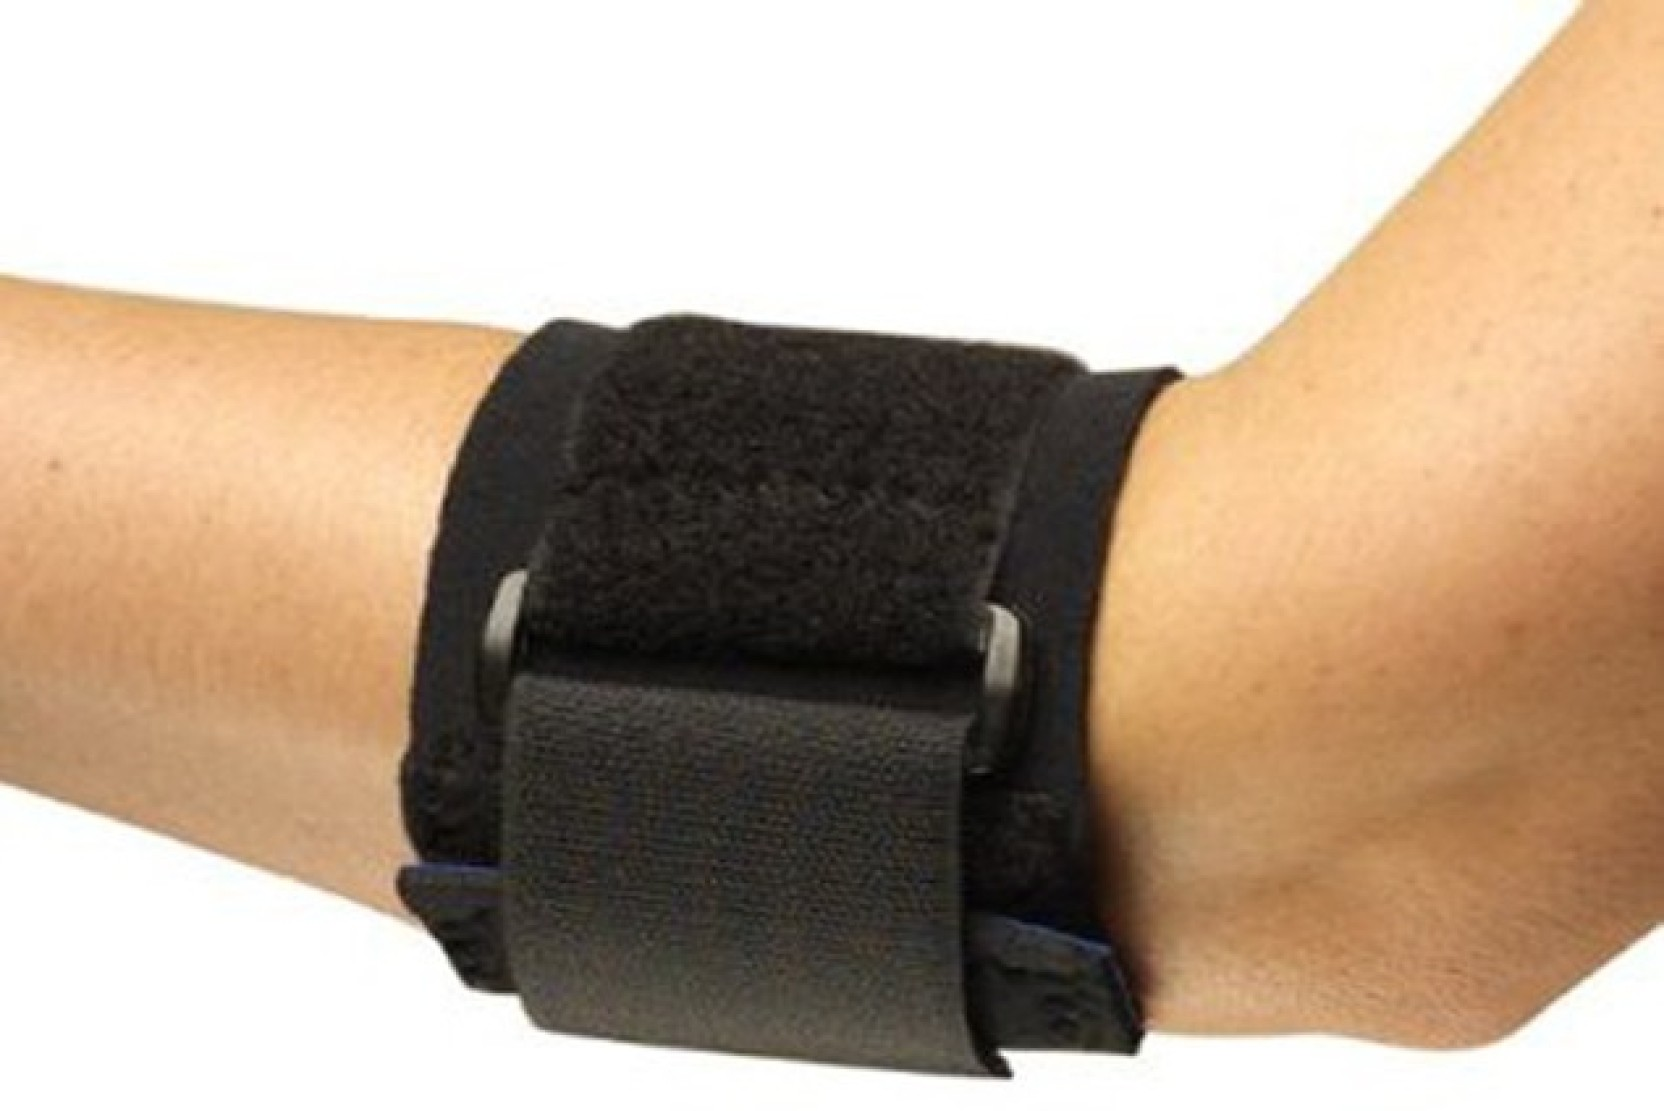 a6be818e64 Turion Tennis Elbow Support (Free Size, Black) - Buy Turion Tennis ...